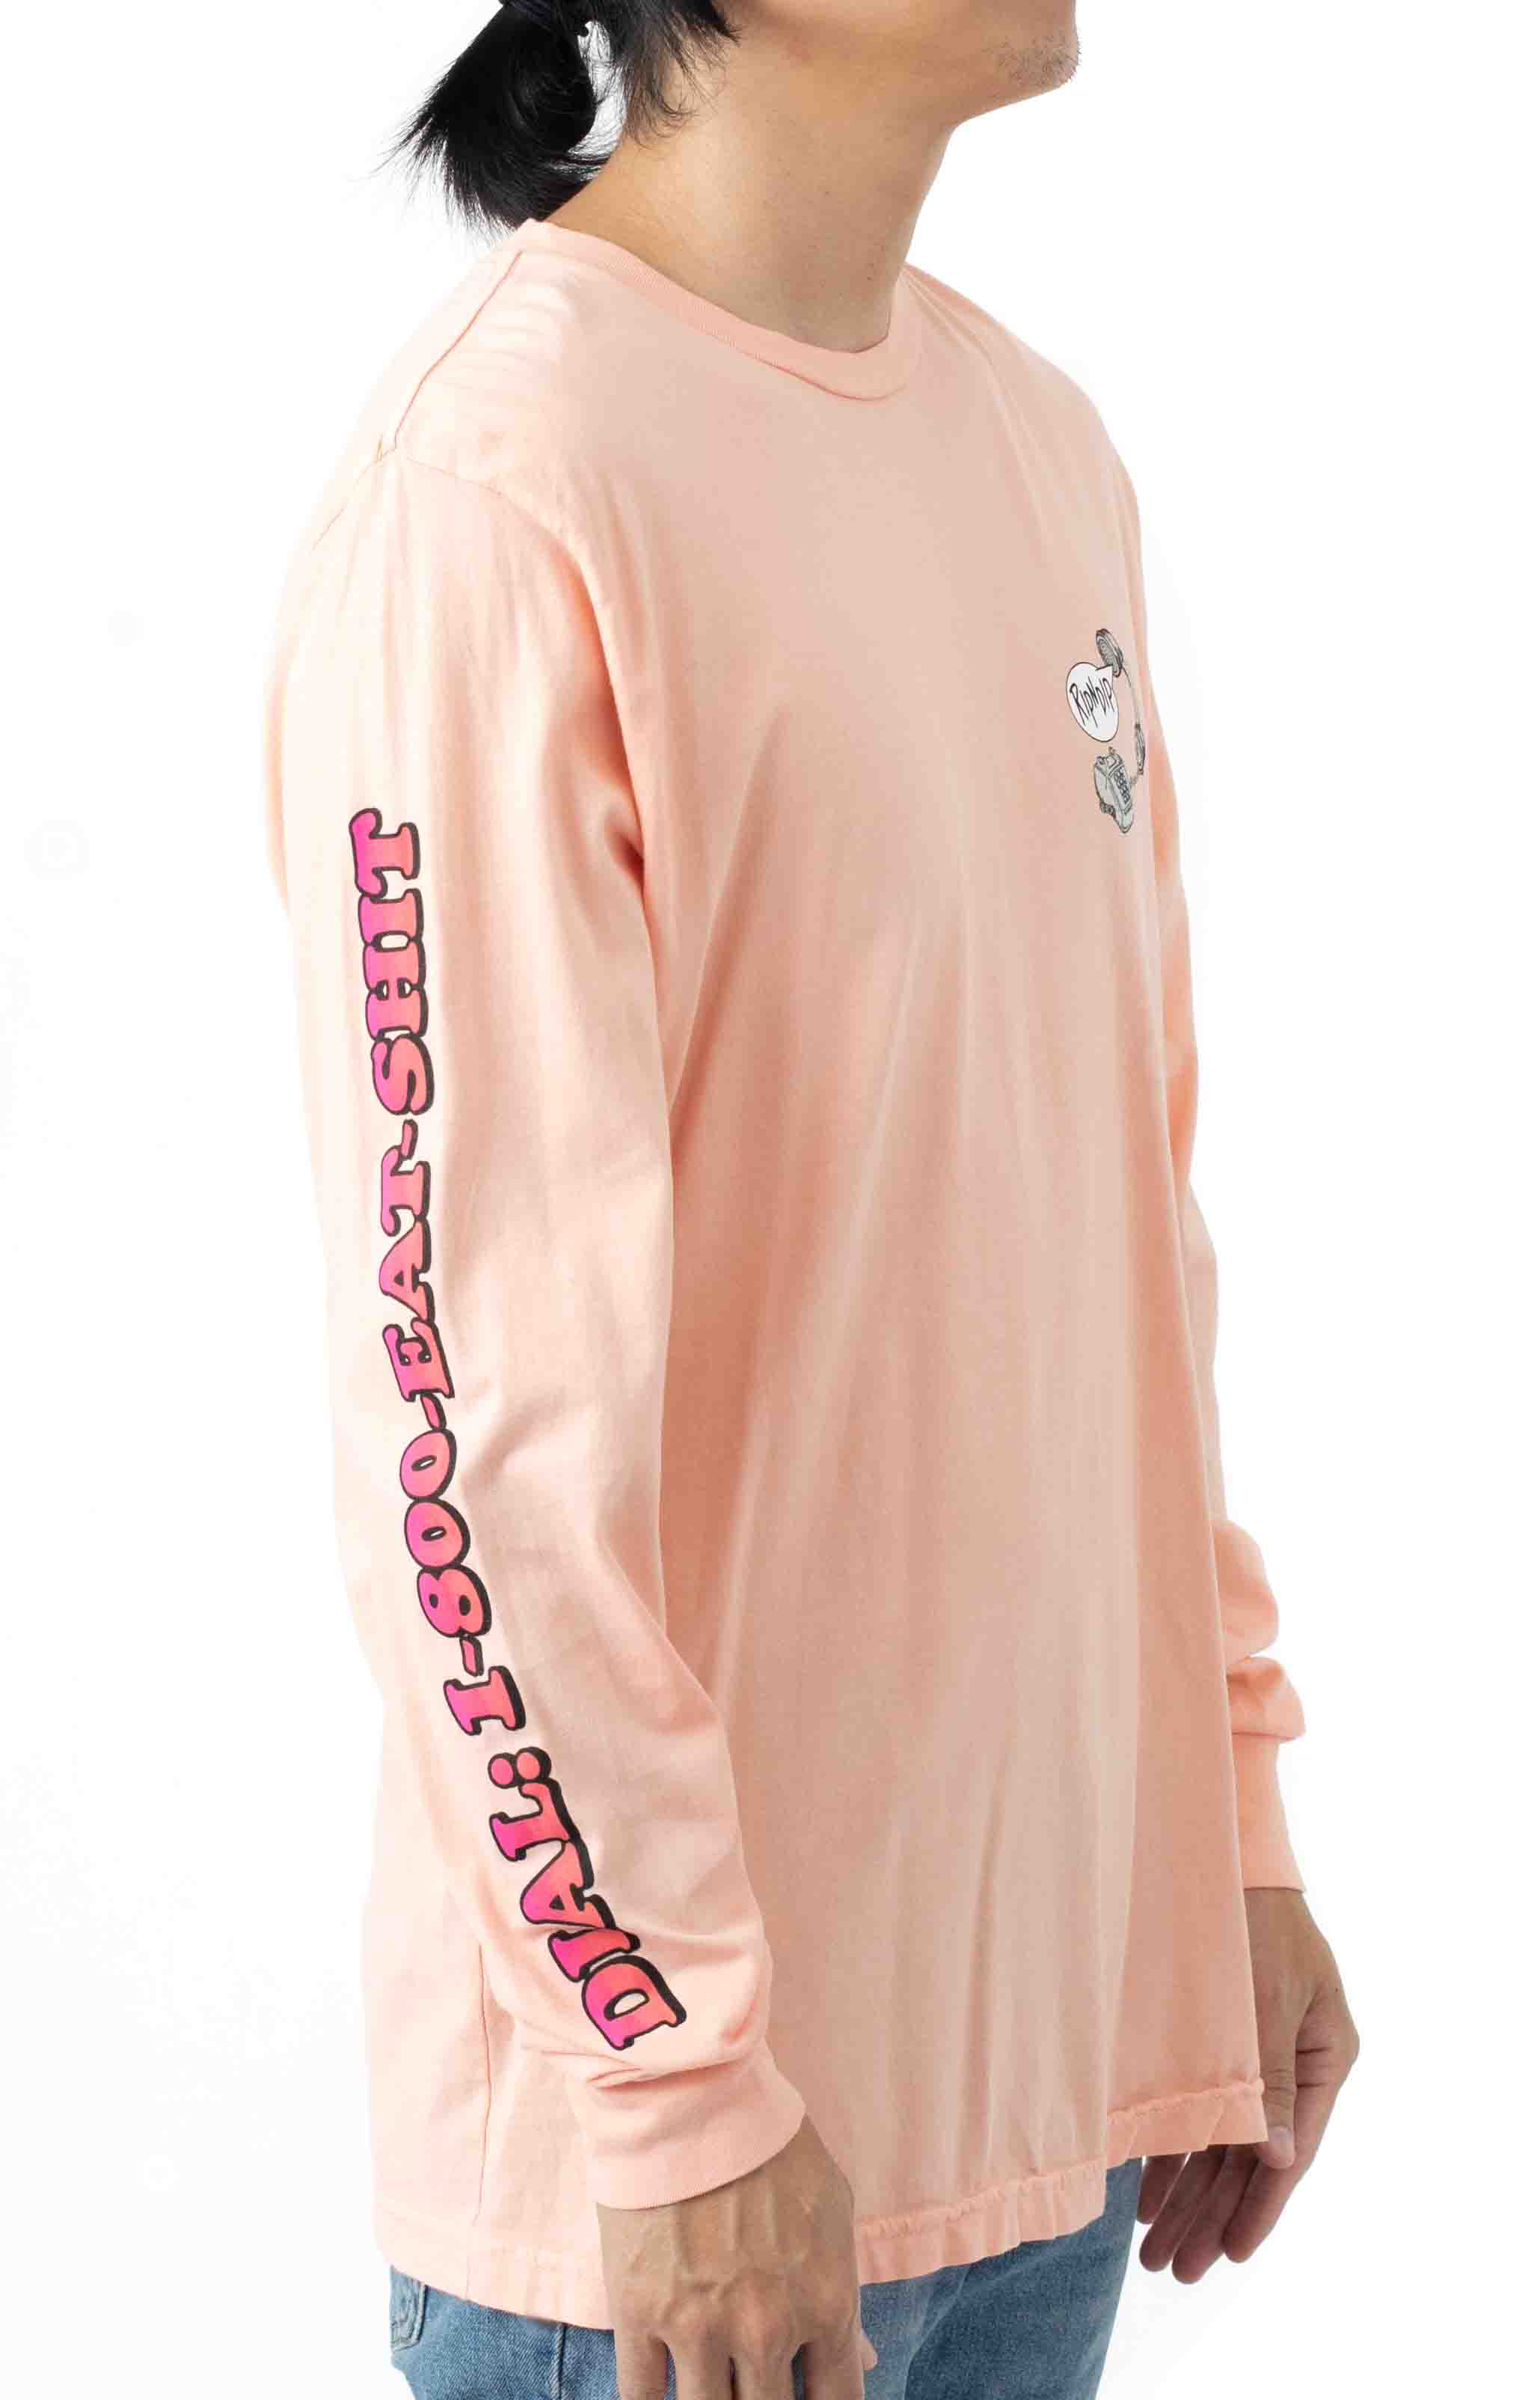 Hows My Attitude L/S Shirt - Dusty Rose  3